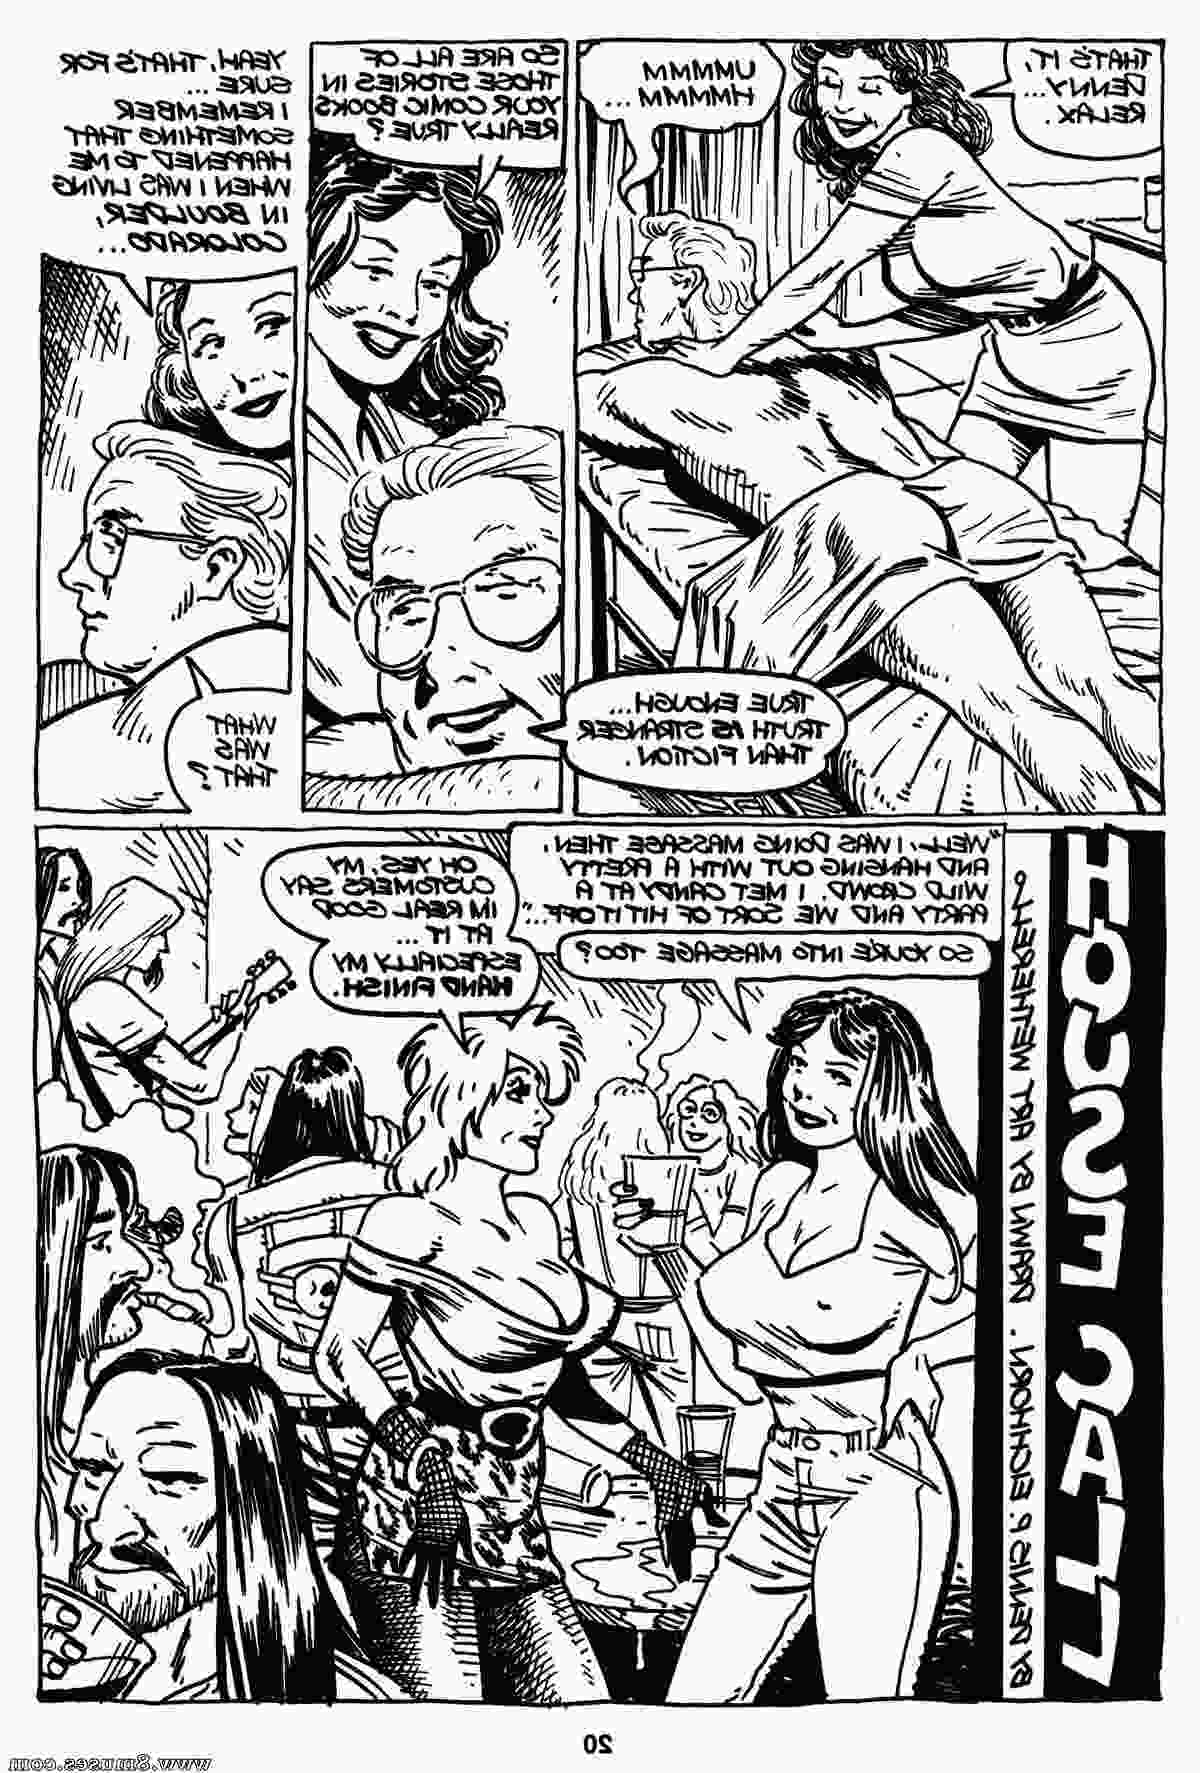 EROS-Comics/Real-Smut Real_Smut__8muses_-_Sex_and_Porn_Comics_22.jpg